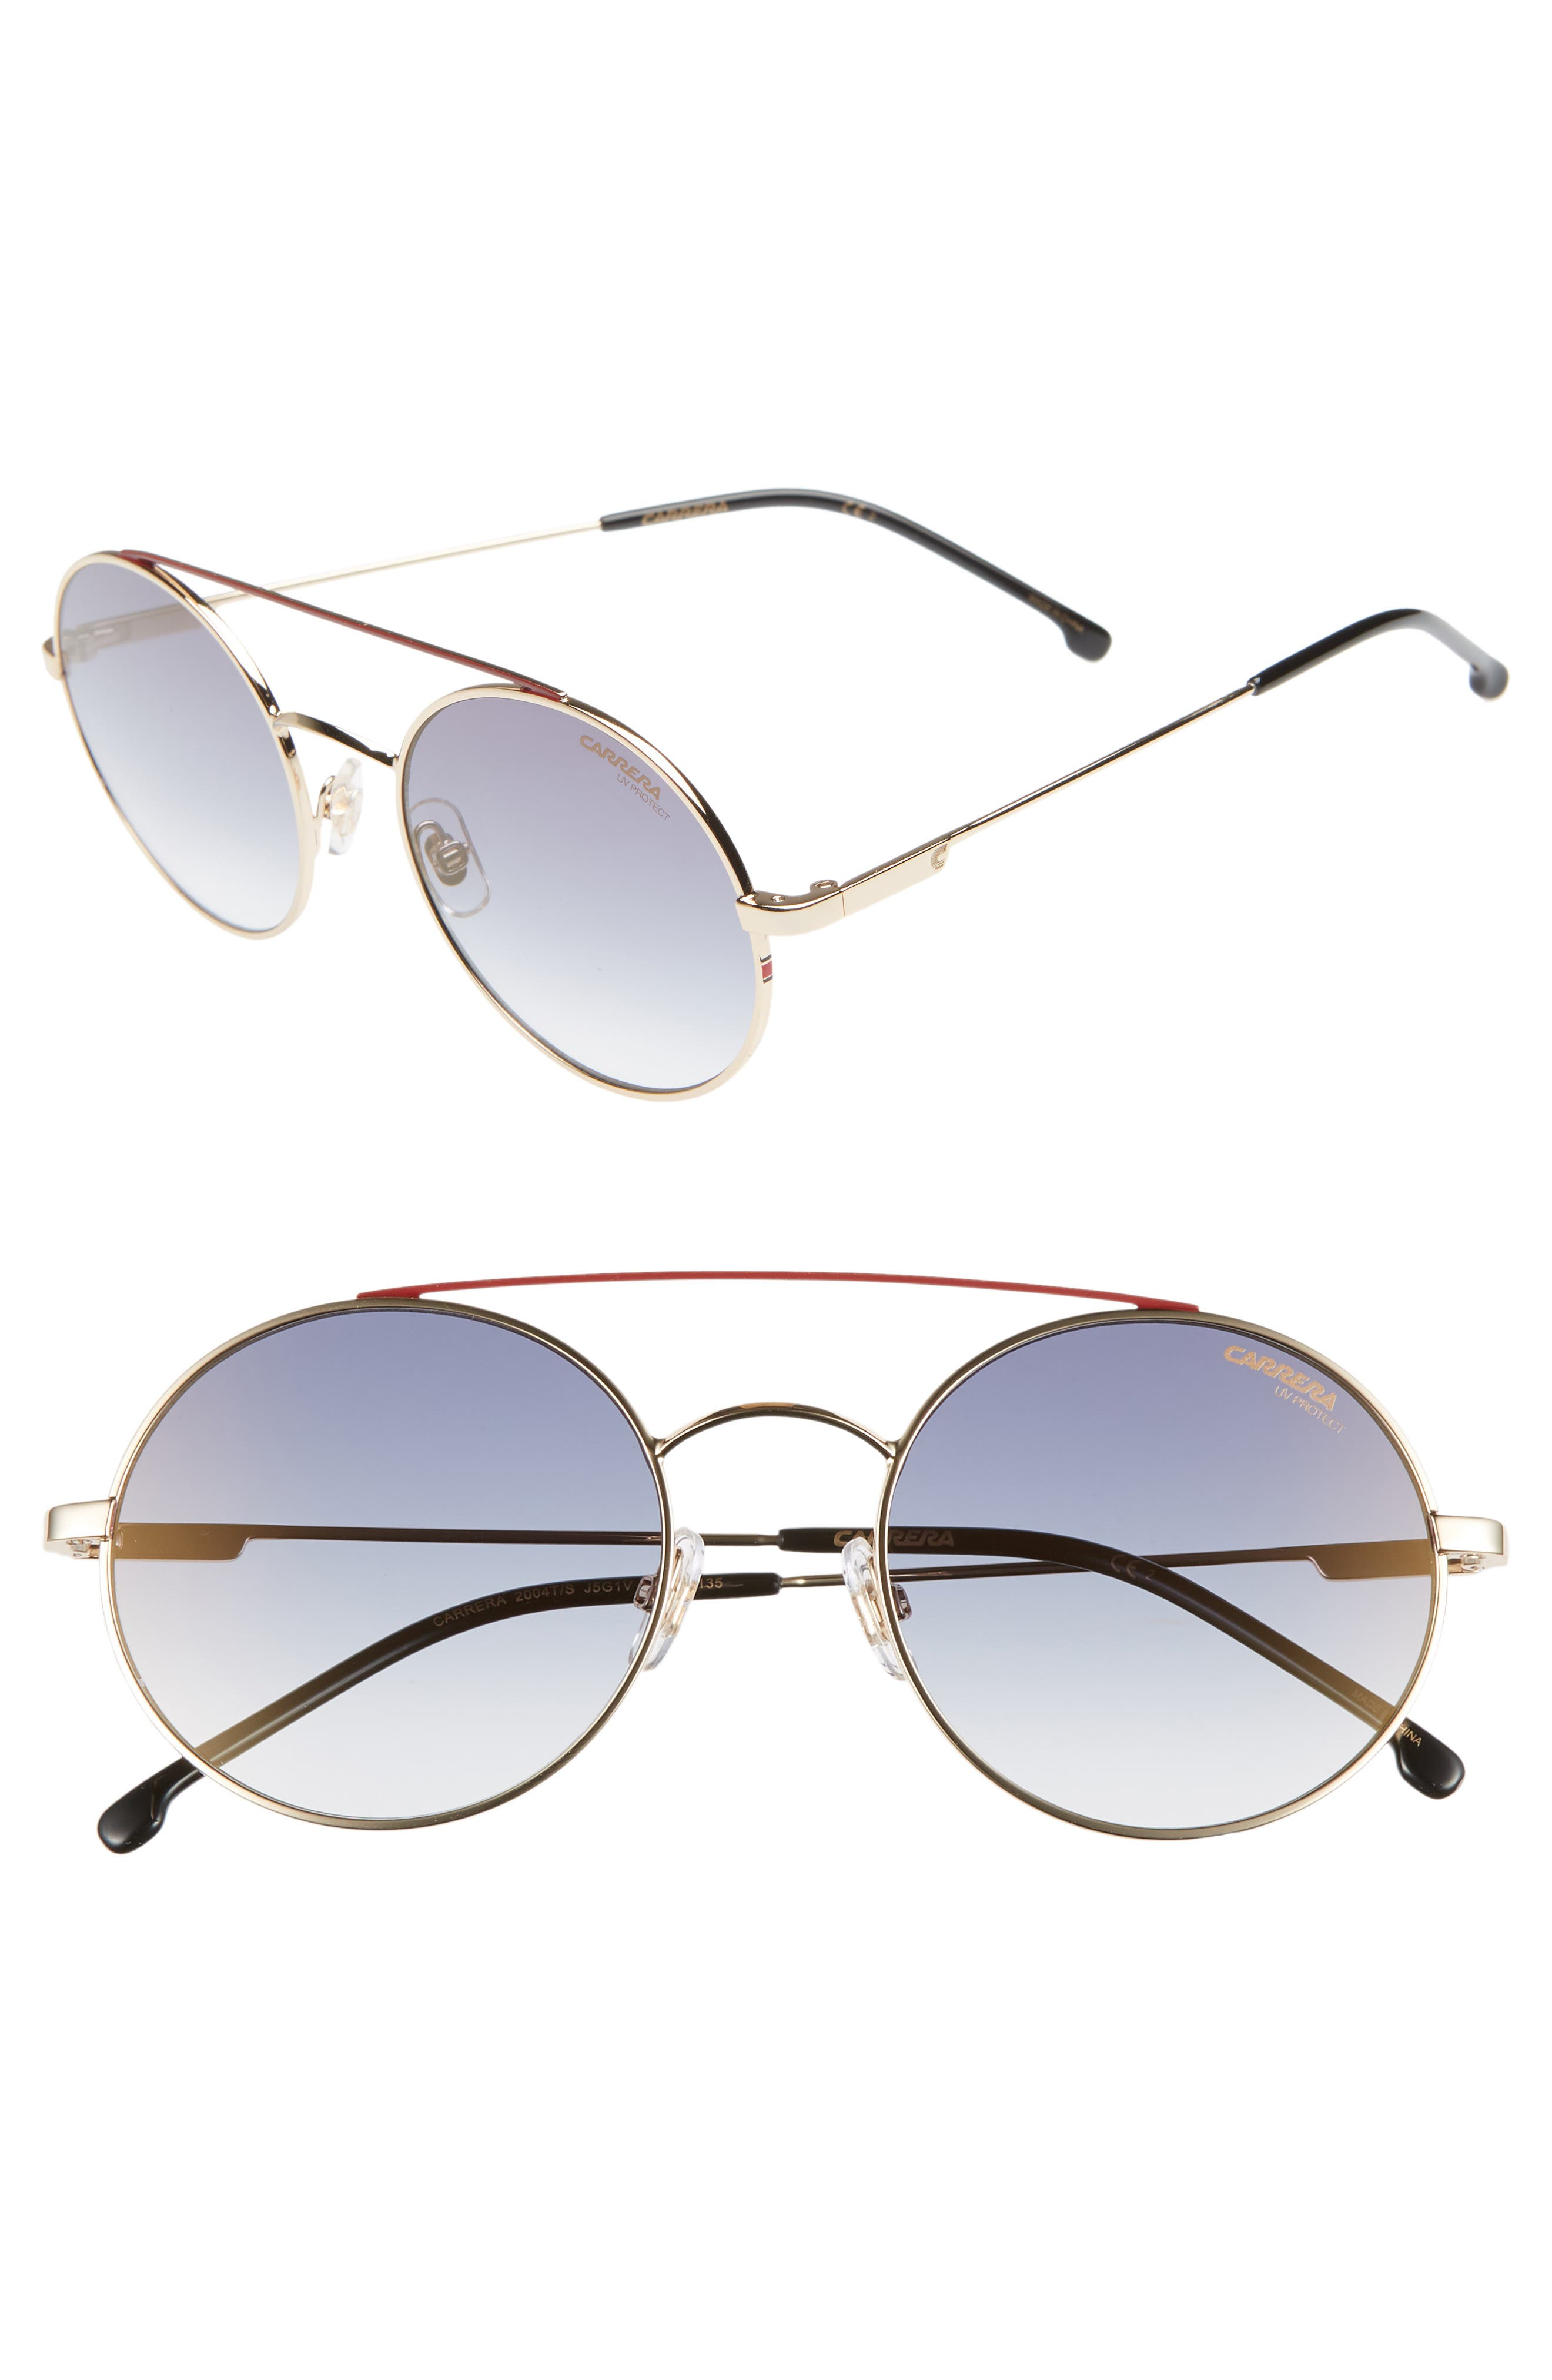 Carrera Eyewear 51Mm Round Sunglasses - Gold